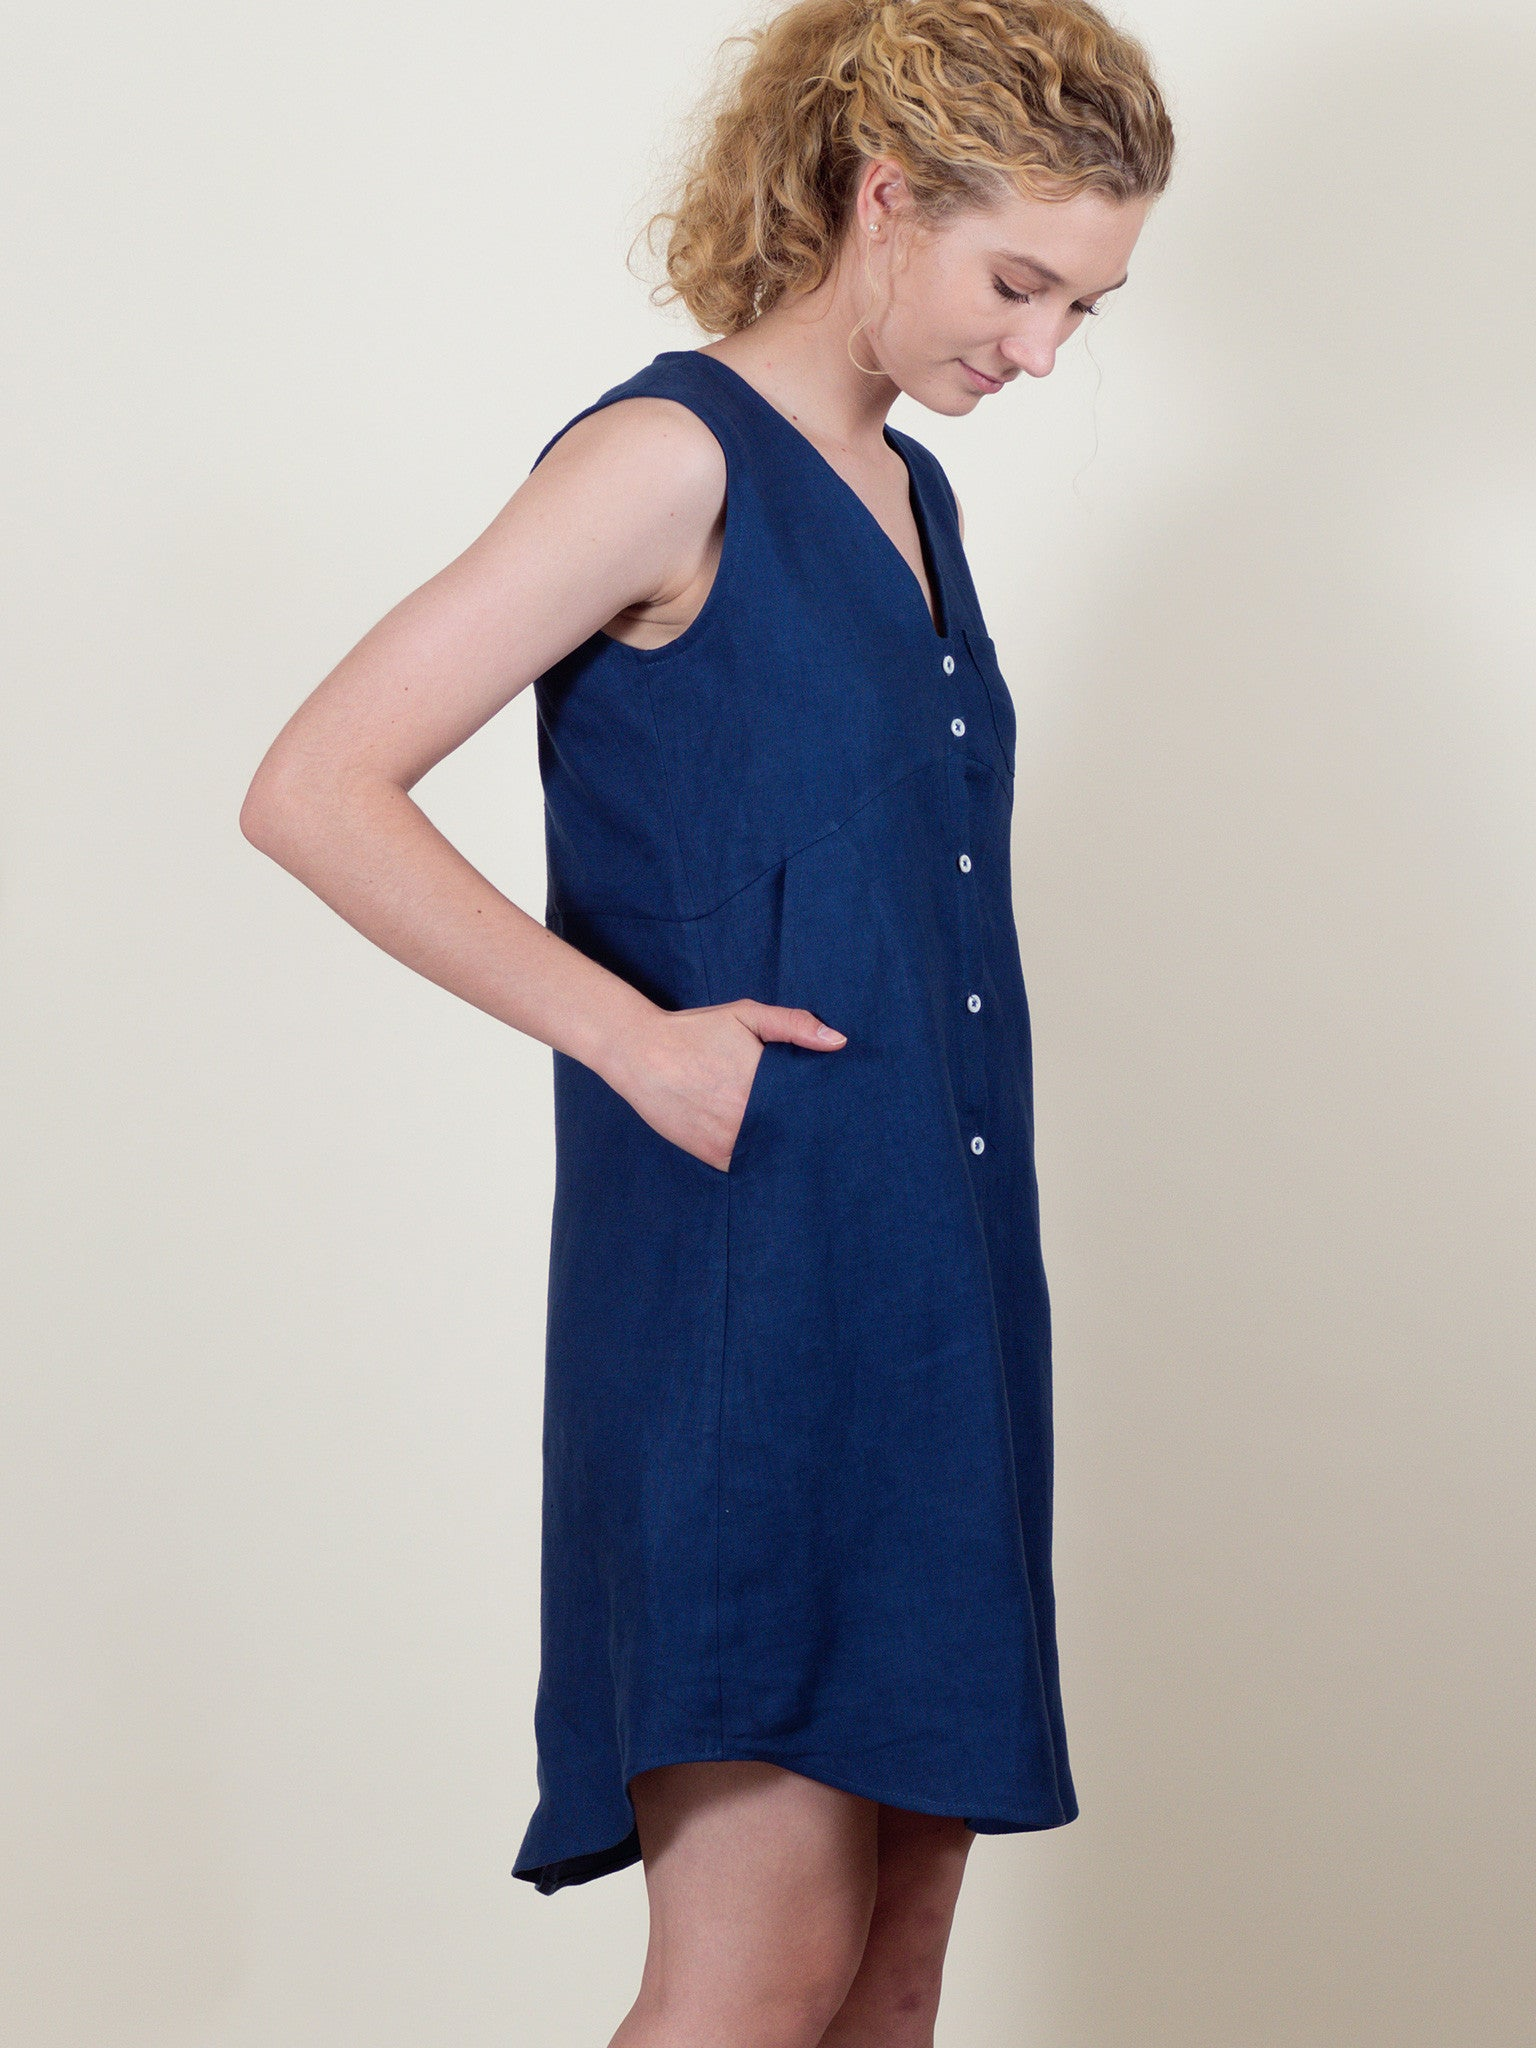 Lily Dress in Blueberry Linen